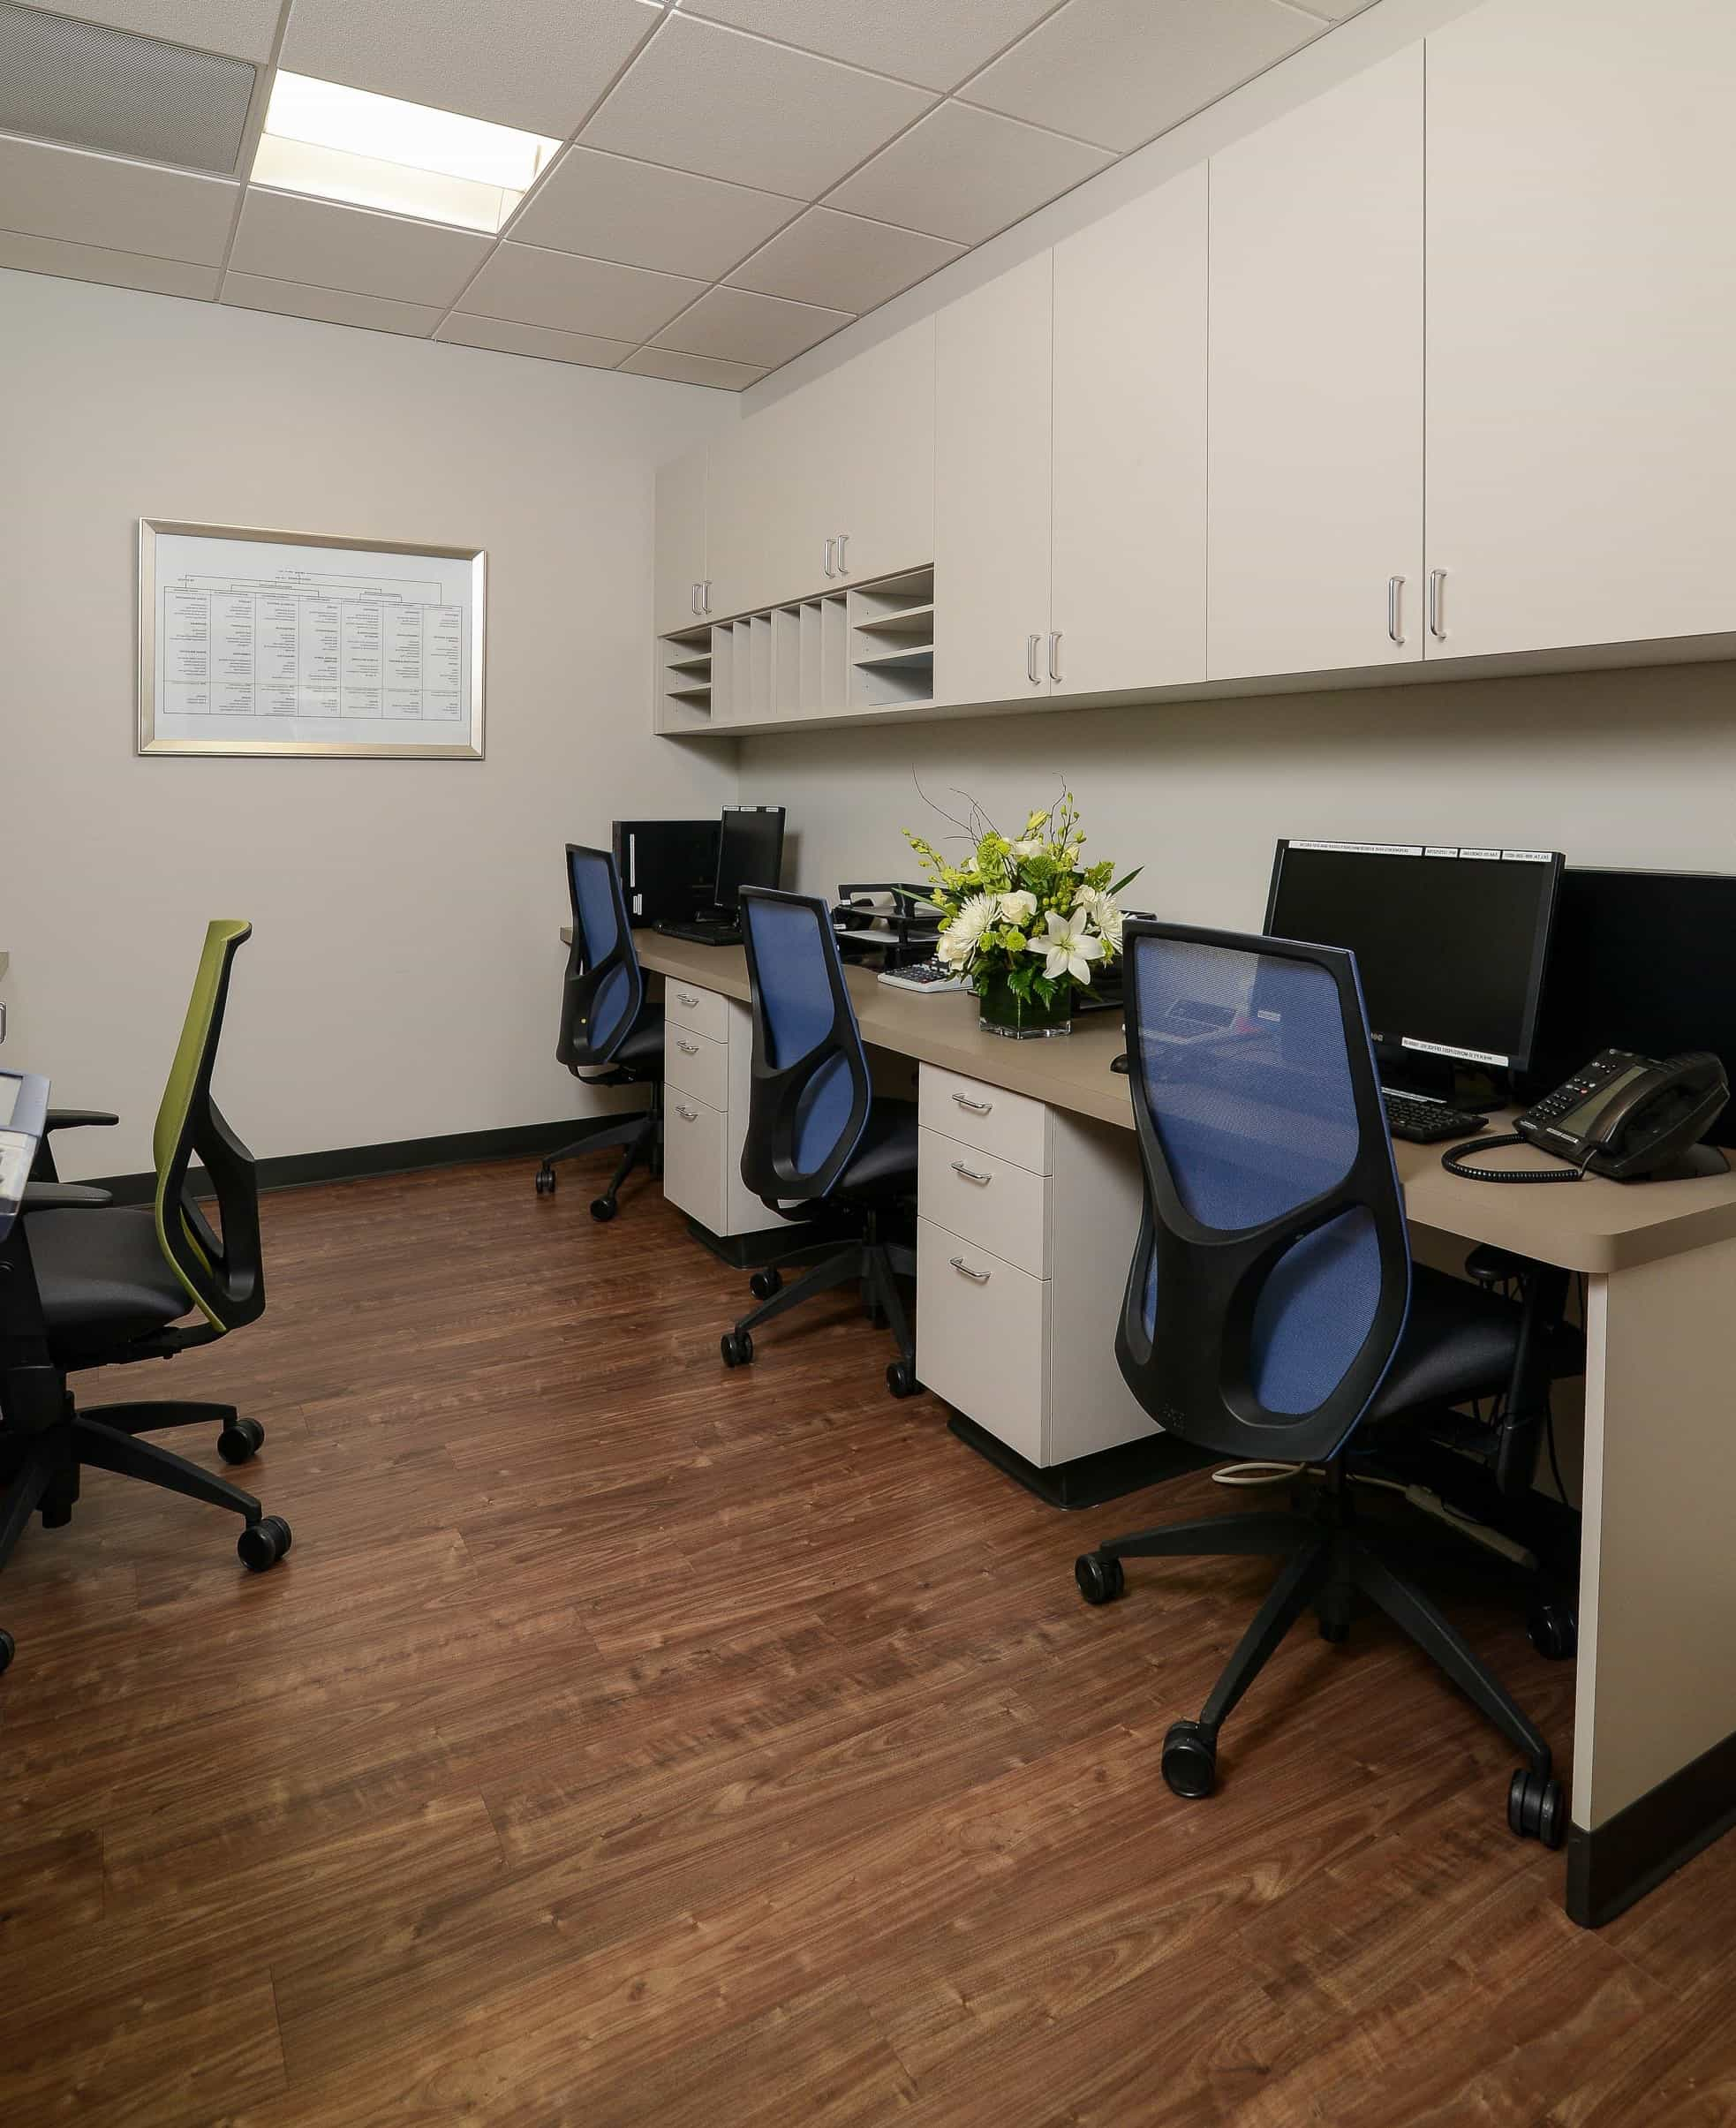 Contemporary Office With Colorful Desk Chairs 49642